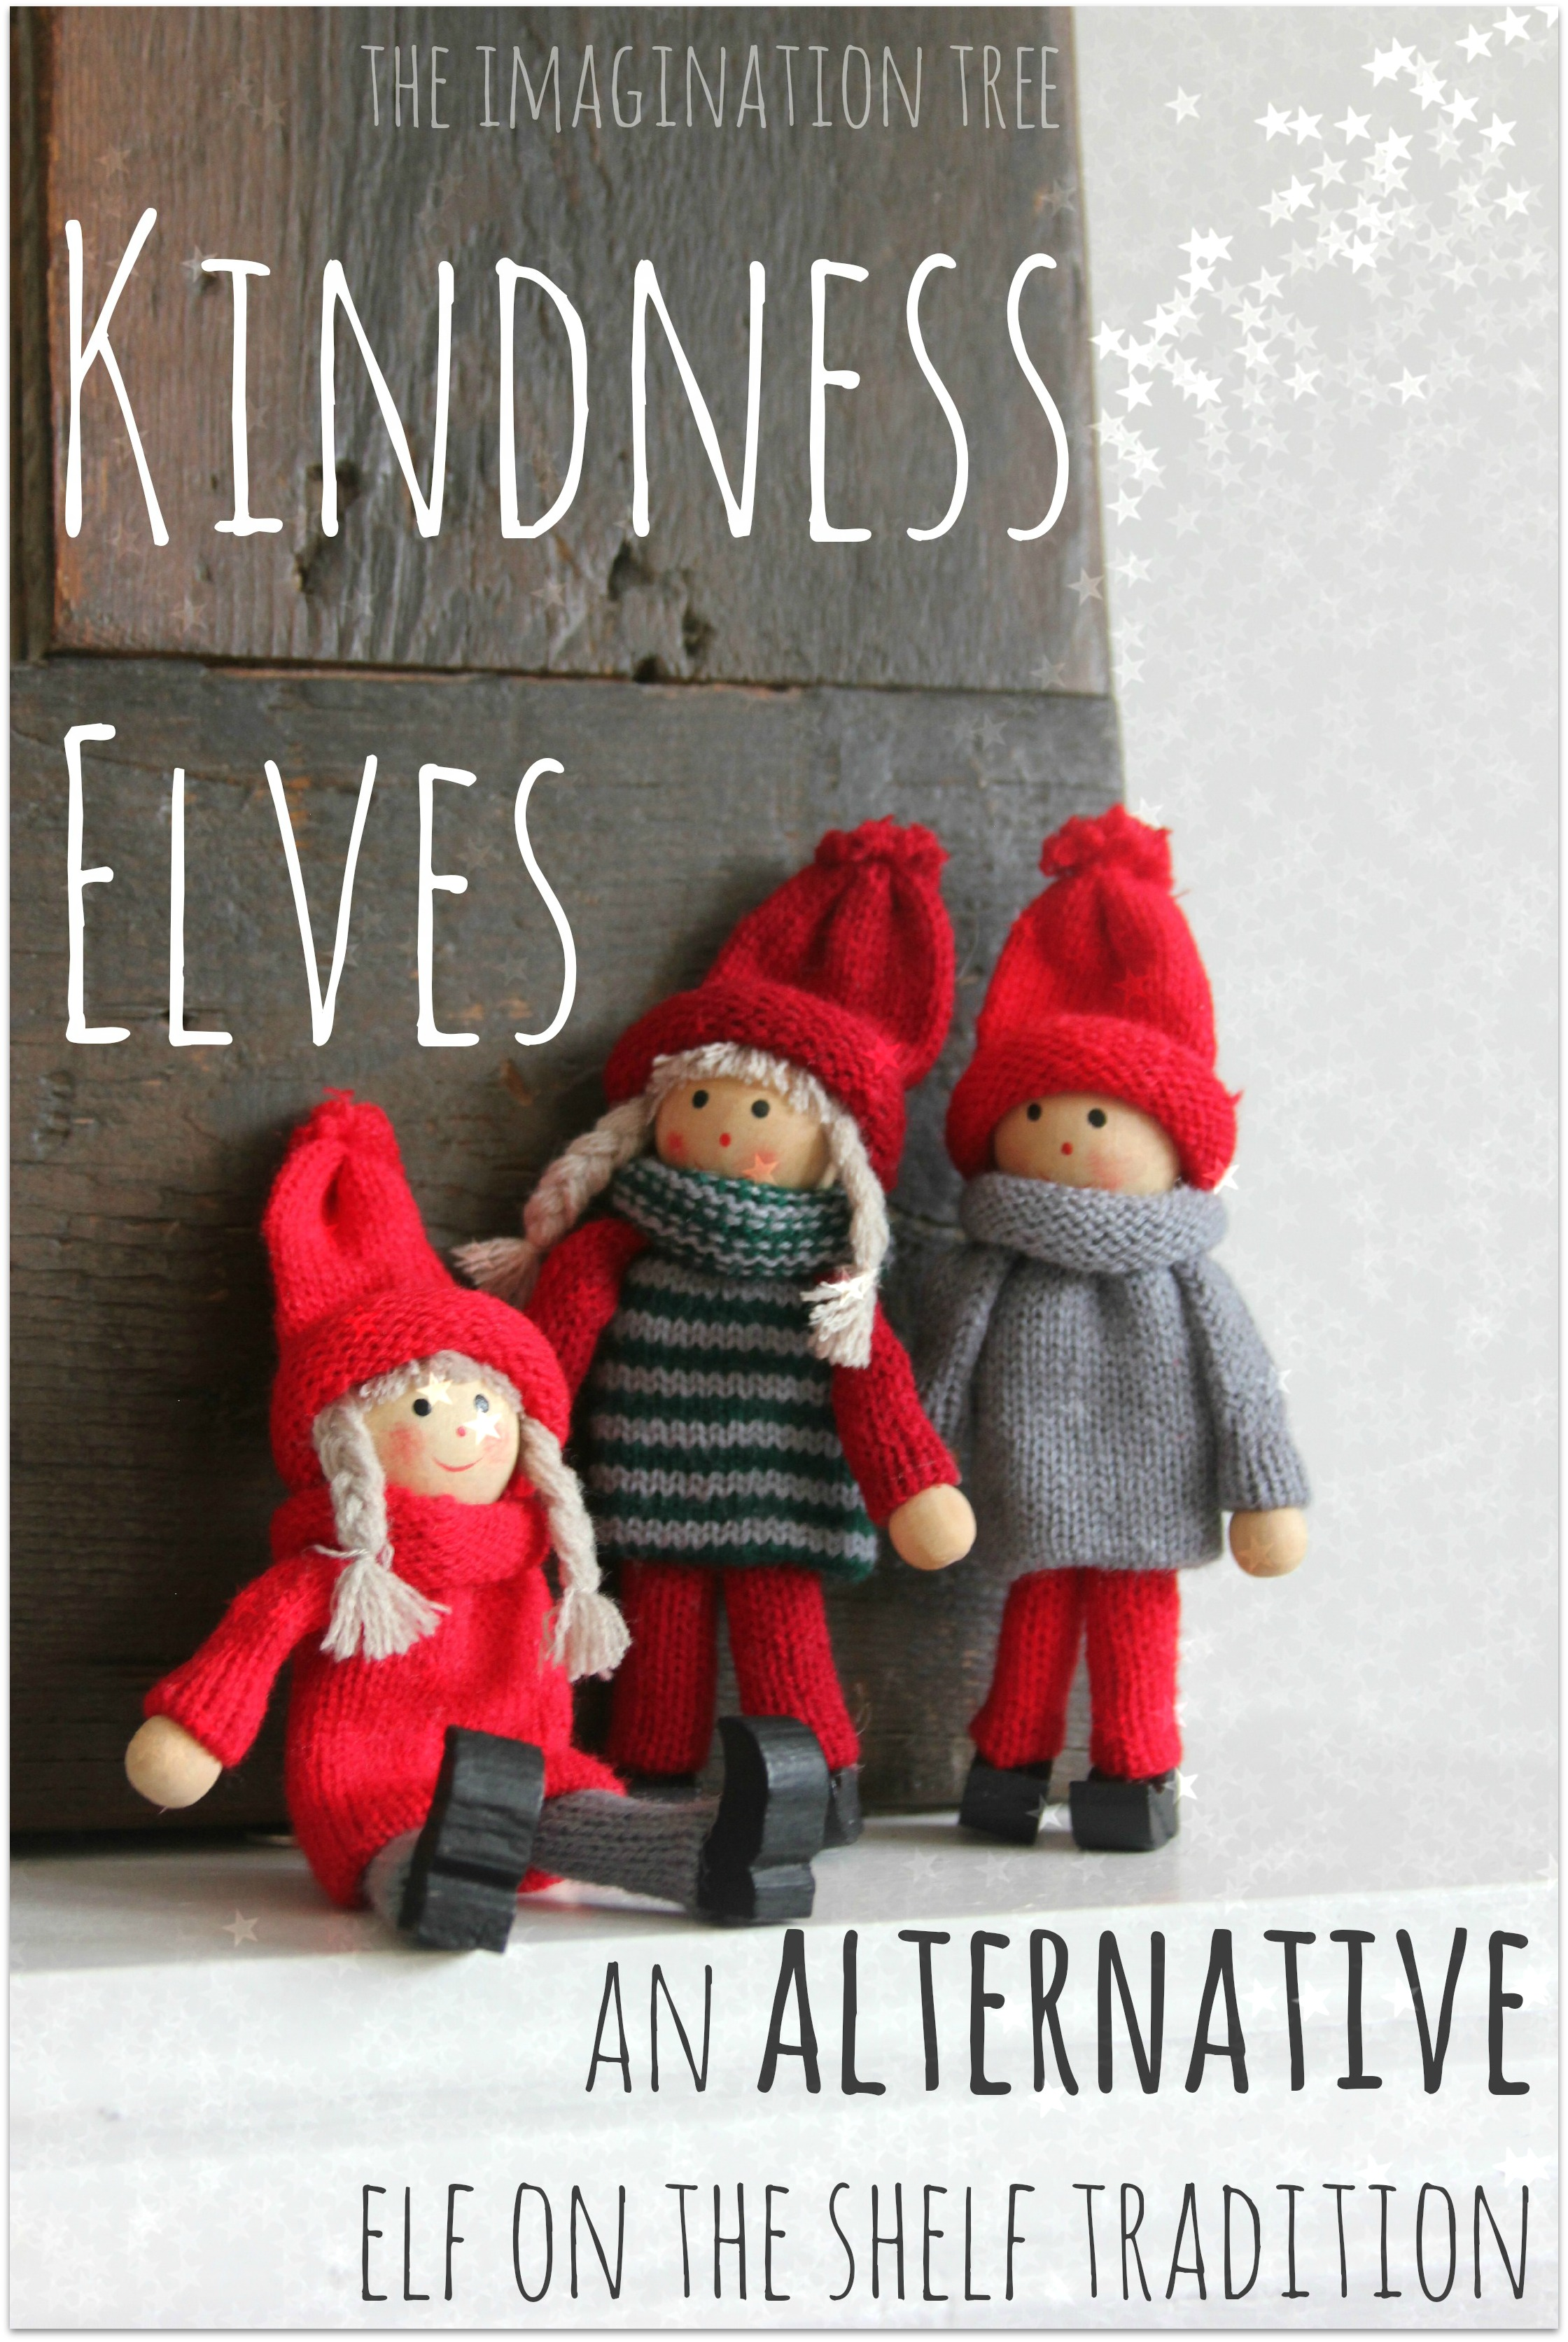 http://theimaginationtree.com/wp-content/uploads/2013/11/Kindness-Elves-Alternative-Elf-on-the-Shelf-Tradition.jpg